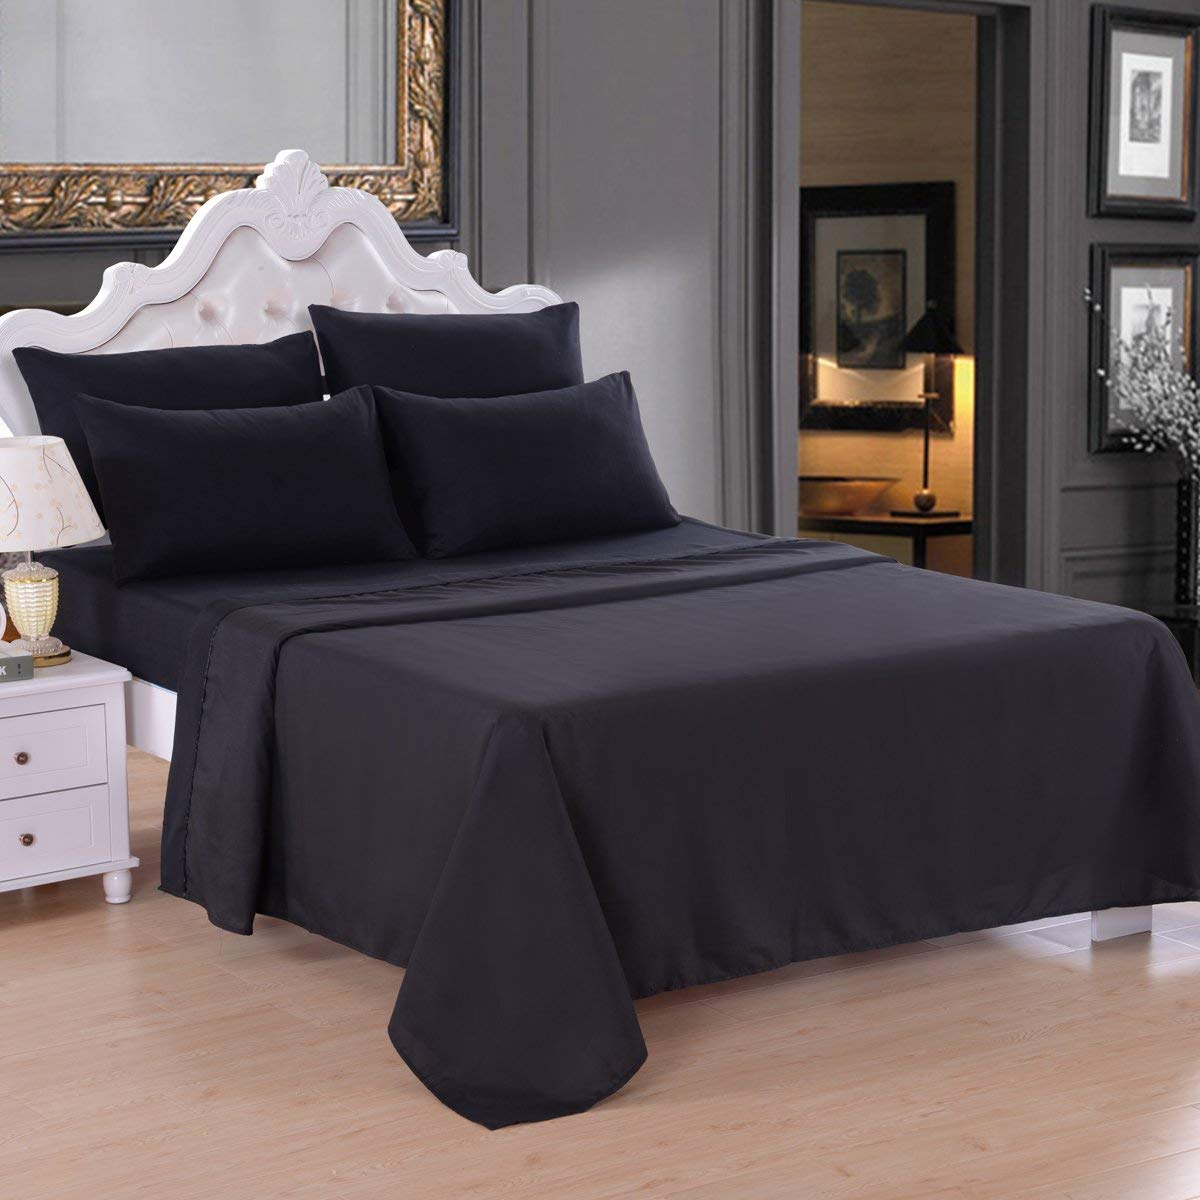 4 Pieces Sheets Bedding Sets Deep Pocket Up To 14